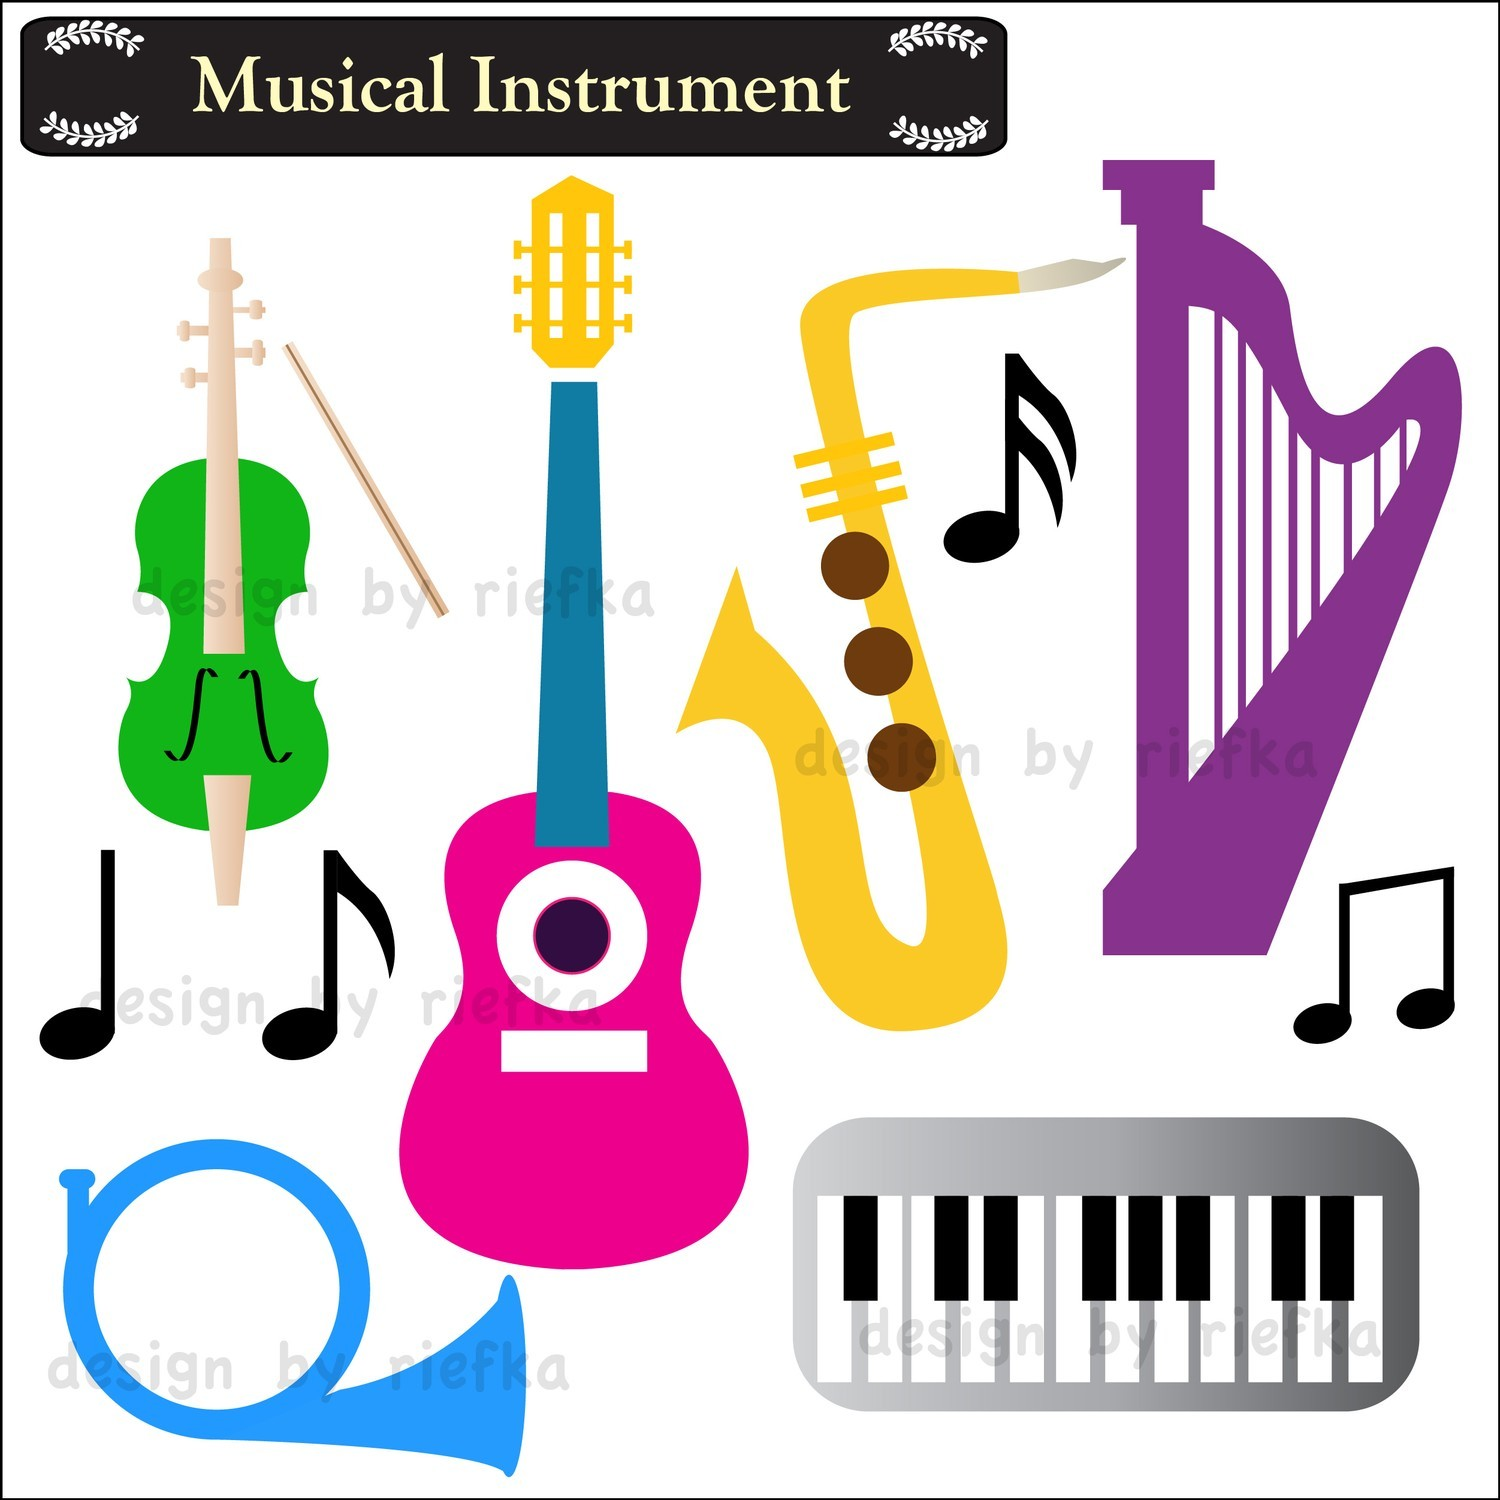 musical instruments clipart 1 clipart panda free clipart images rh clipartpanda com Angel Clip Art Free Download christmas music clipart free download